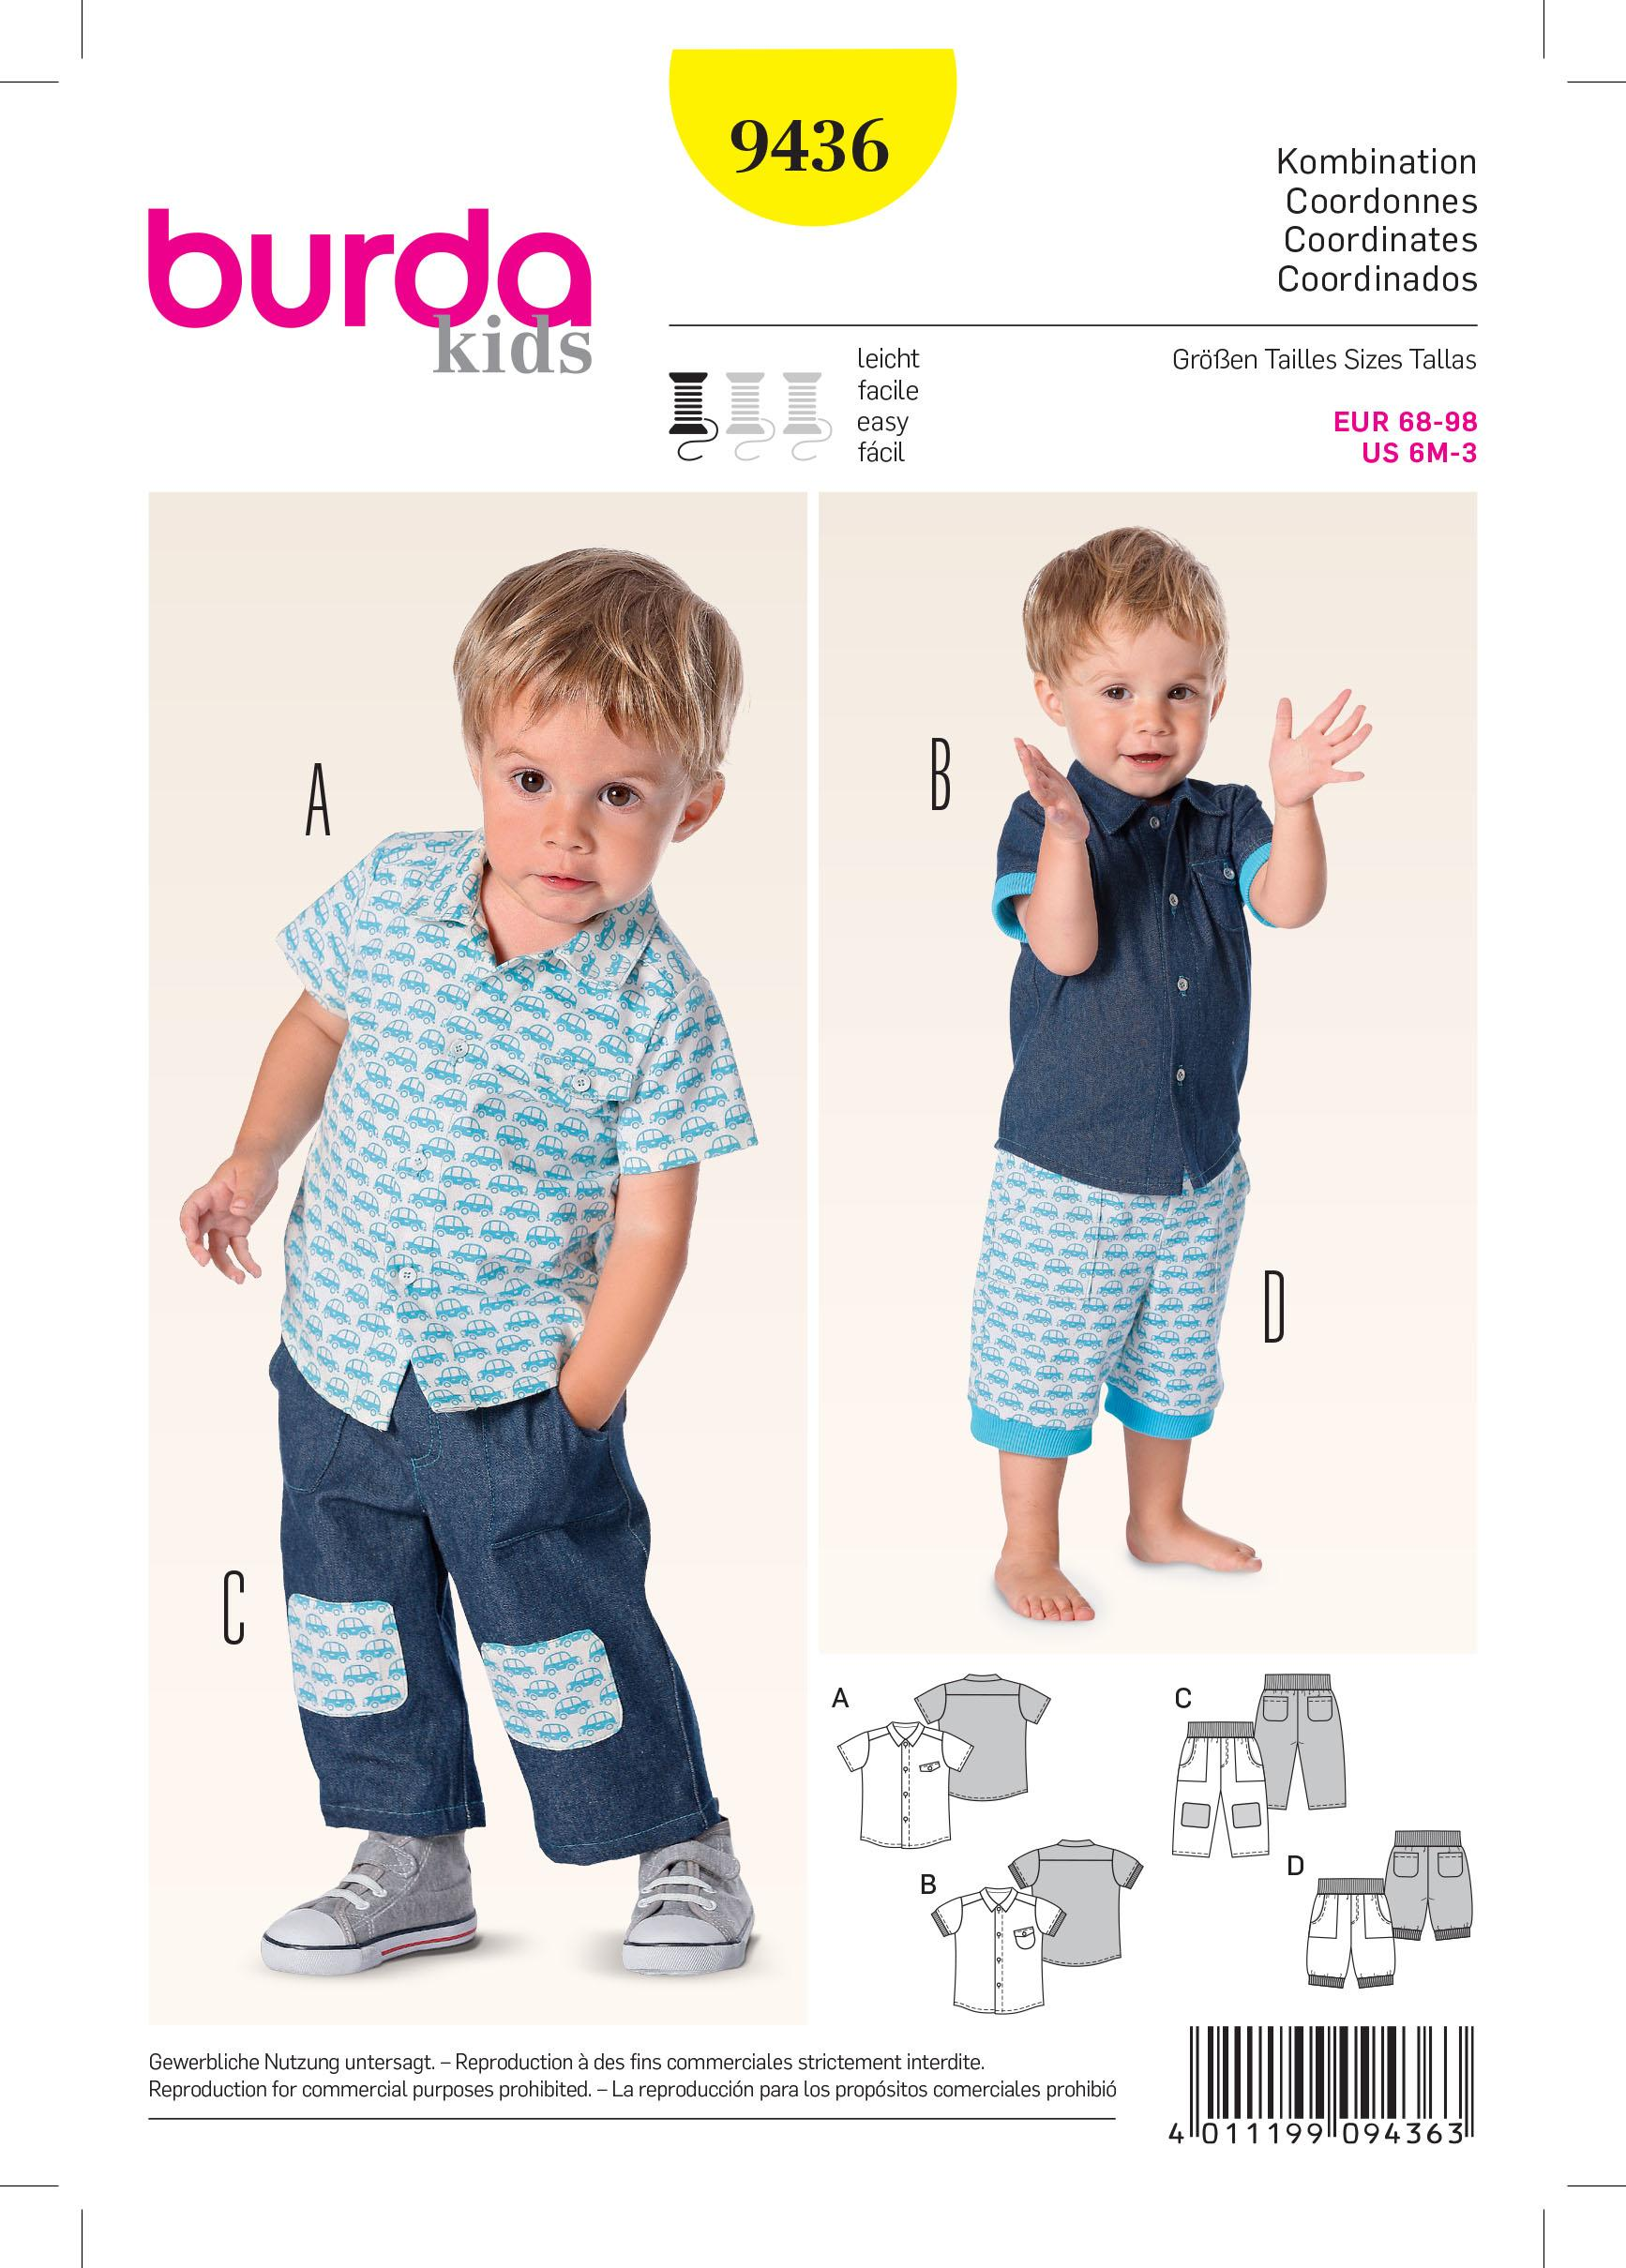 Burda B9436 Burda Baby Sewing Pattern